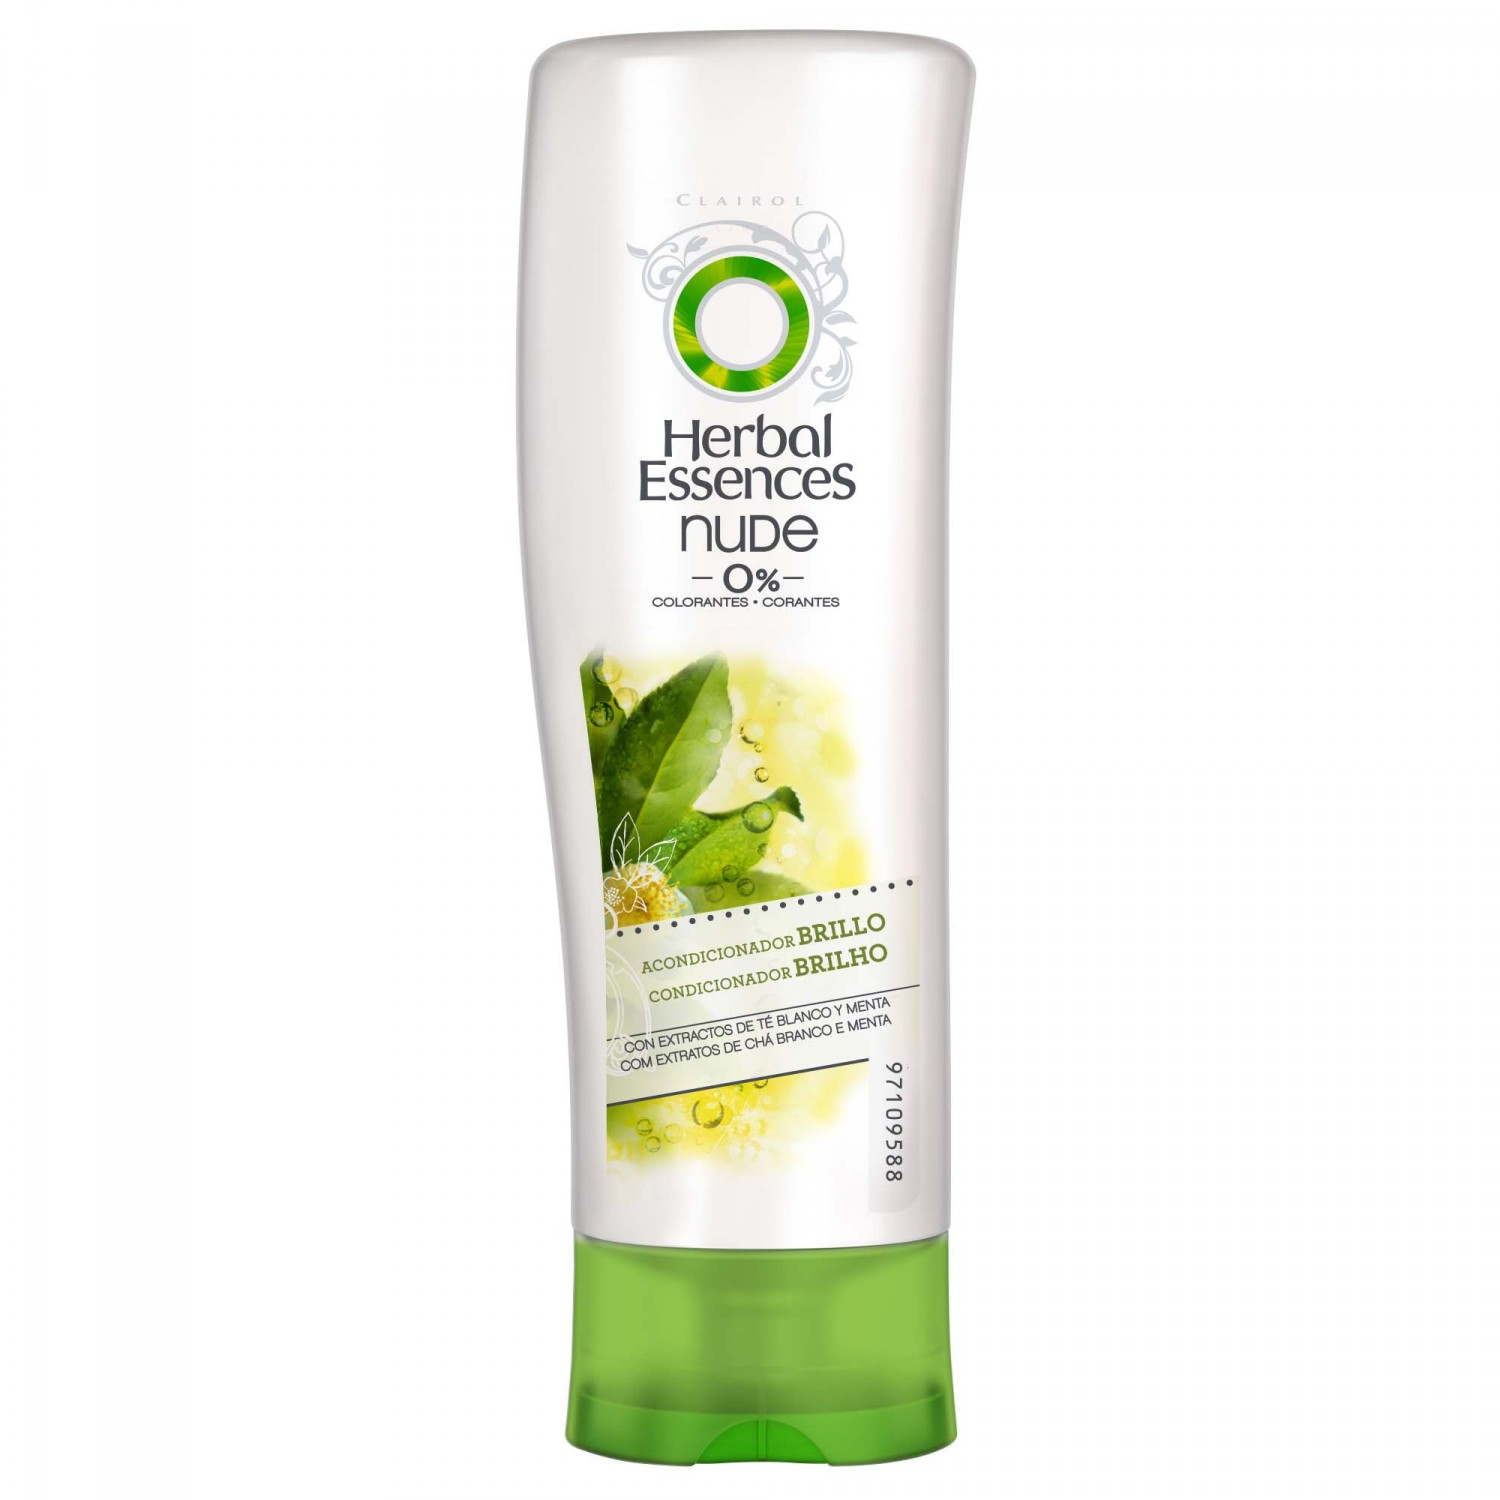 Herbal Essences nude nude acondicionador brillo con extractos te blanco menta de 40cl.